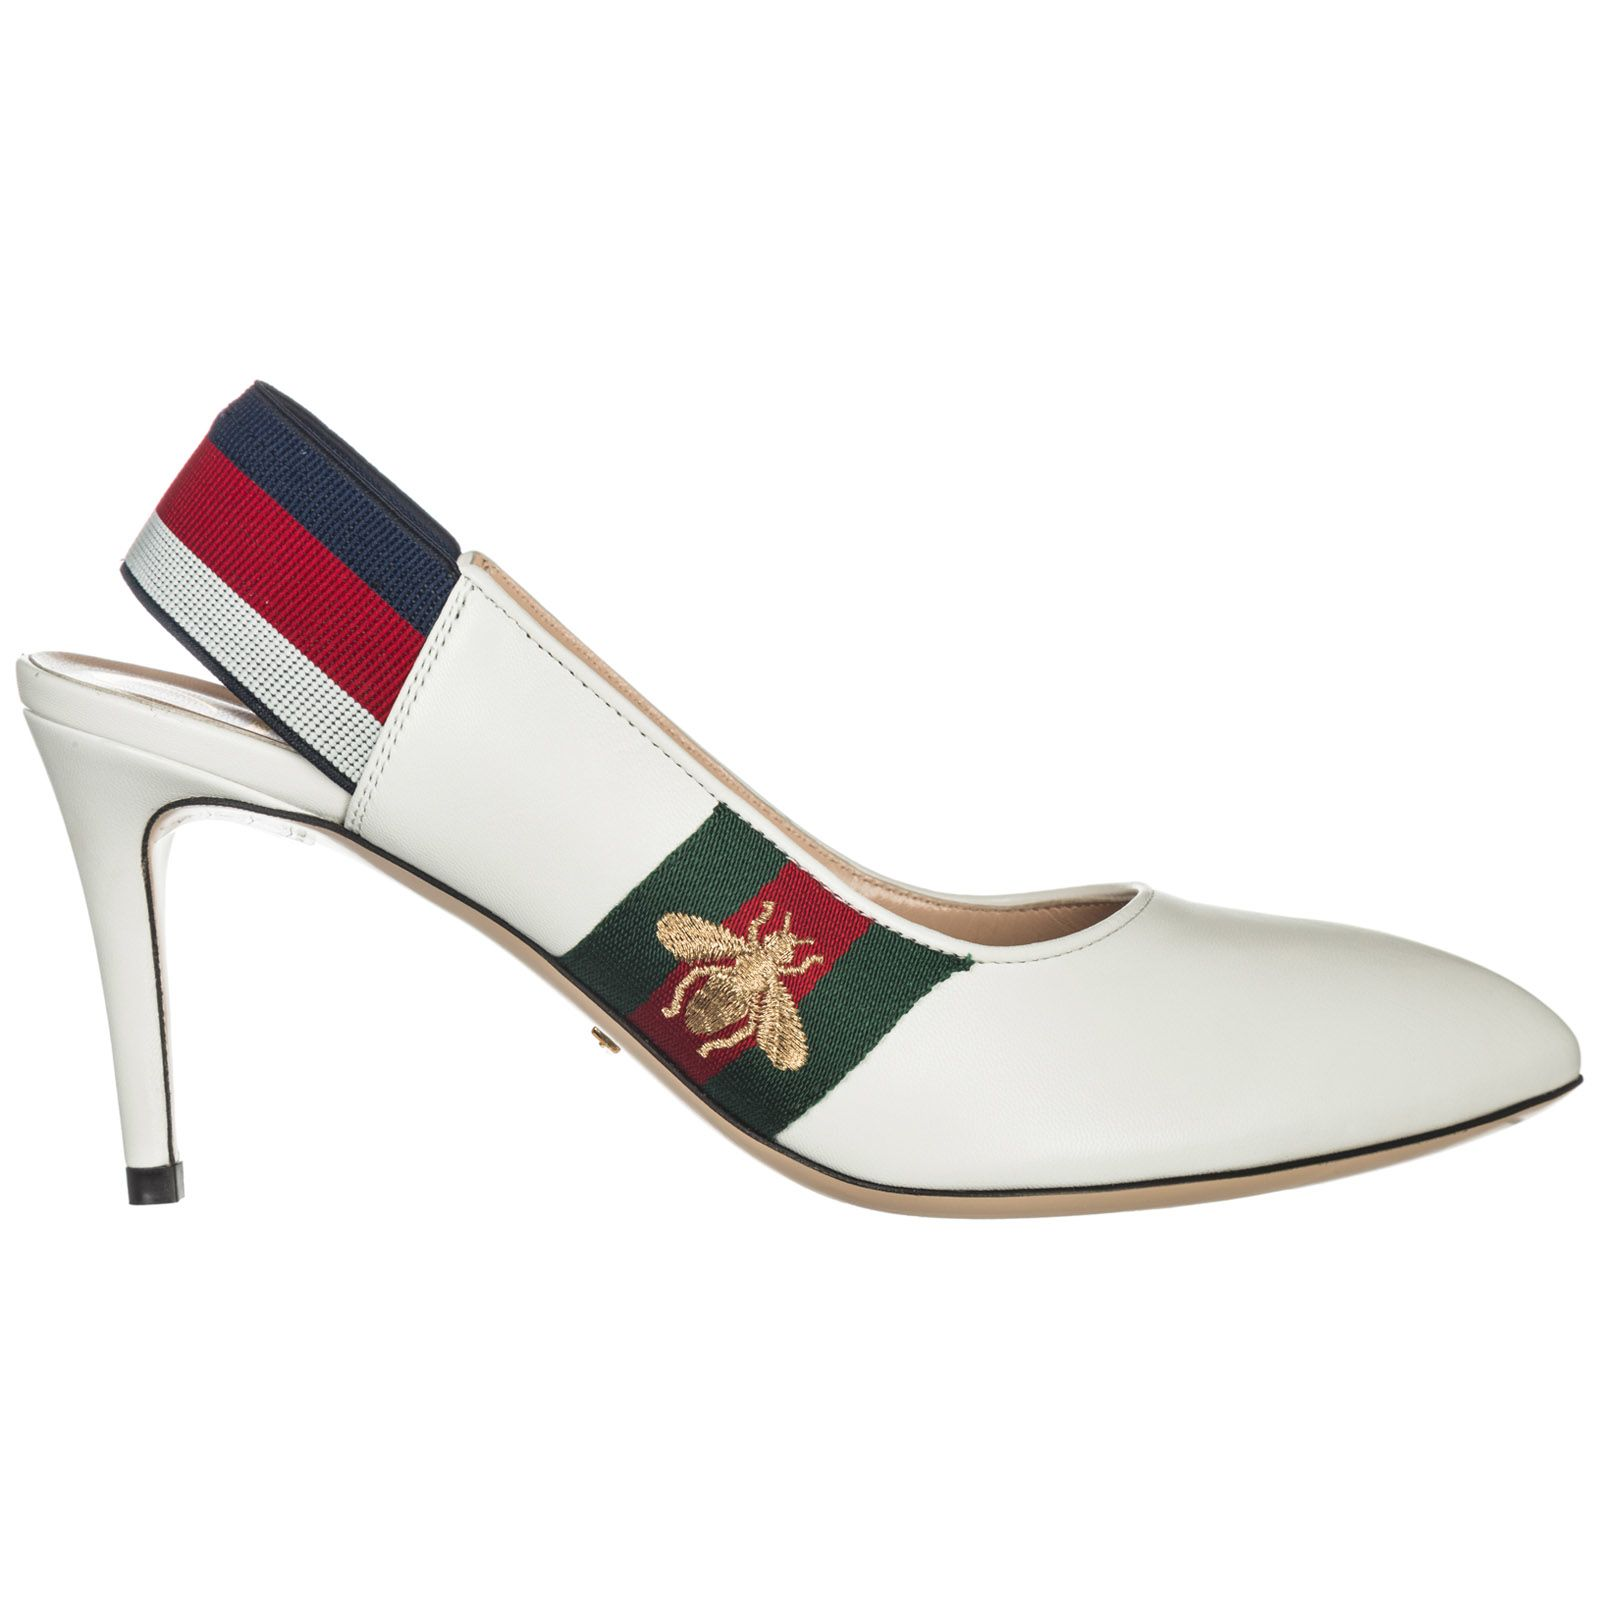 Gucci Shoes Gucci  Leather Pumps Court Shoes High Heel